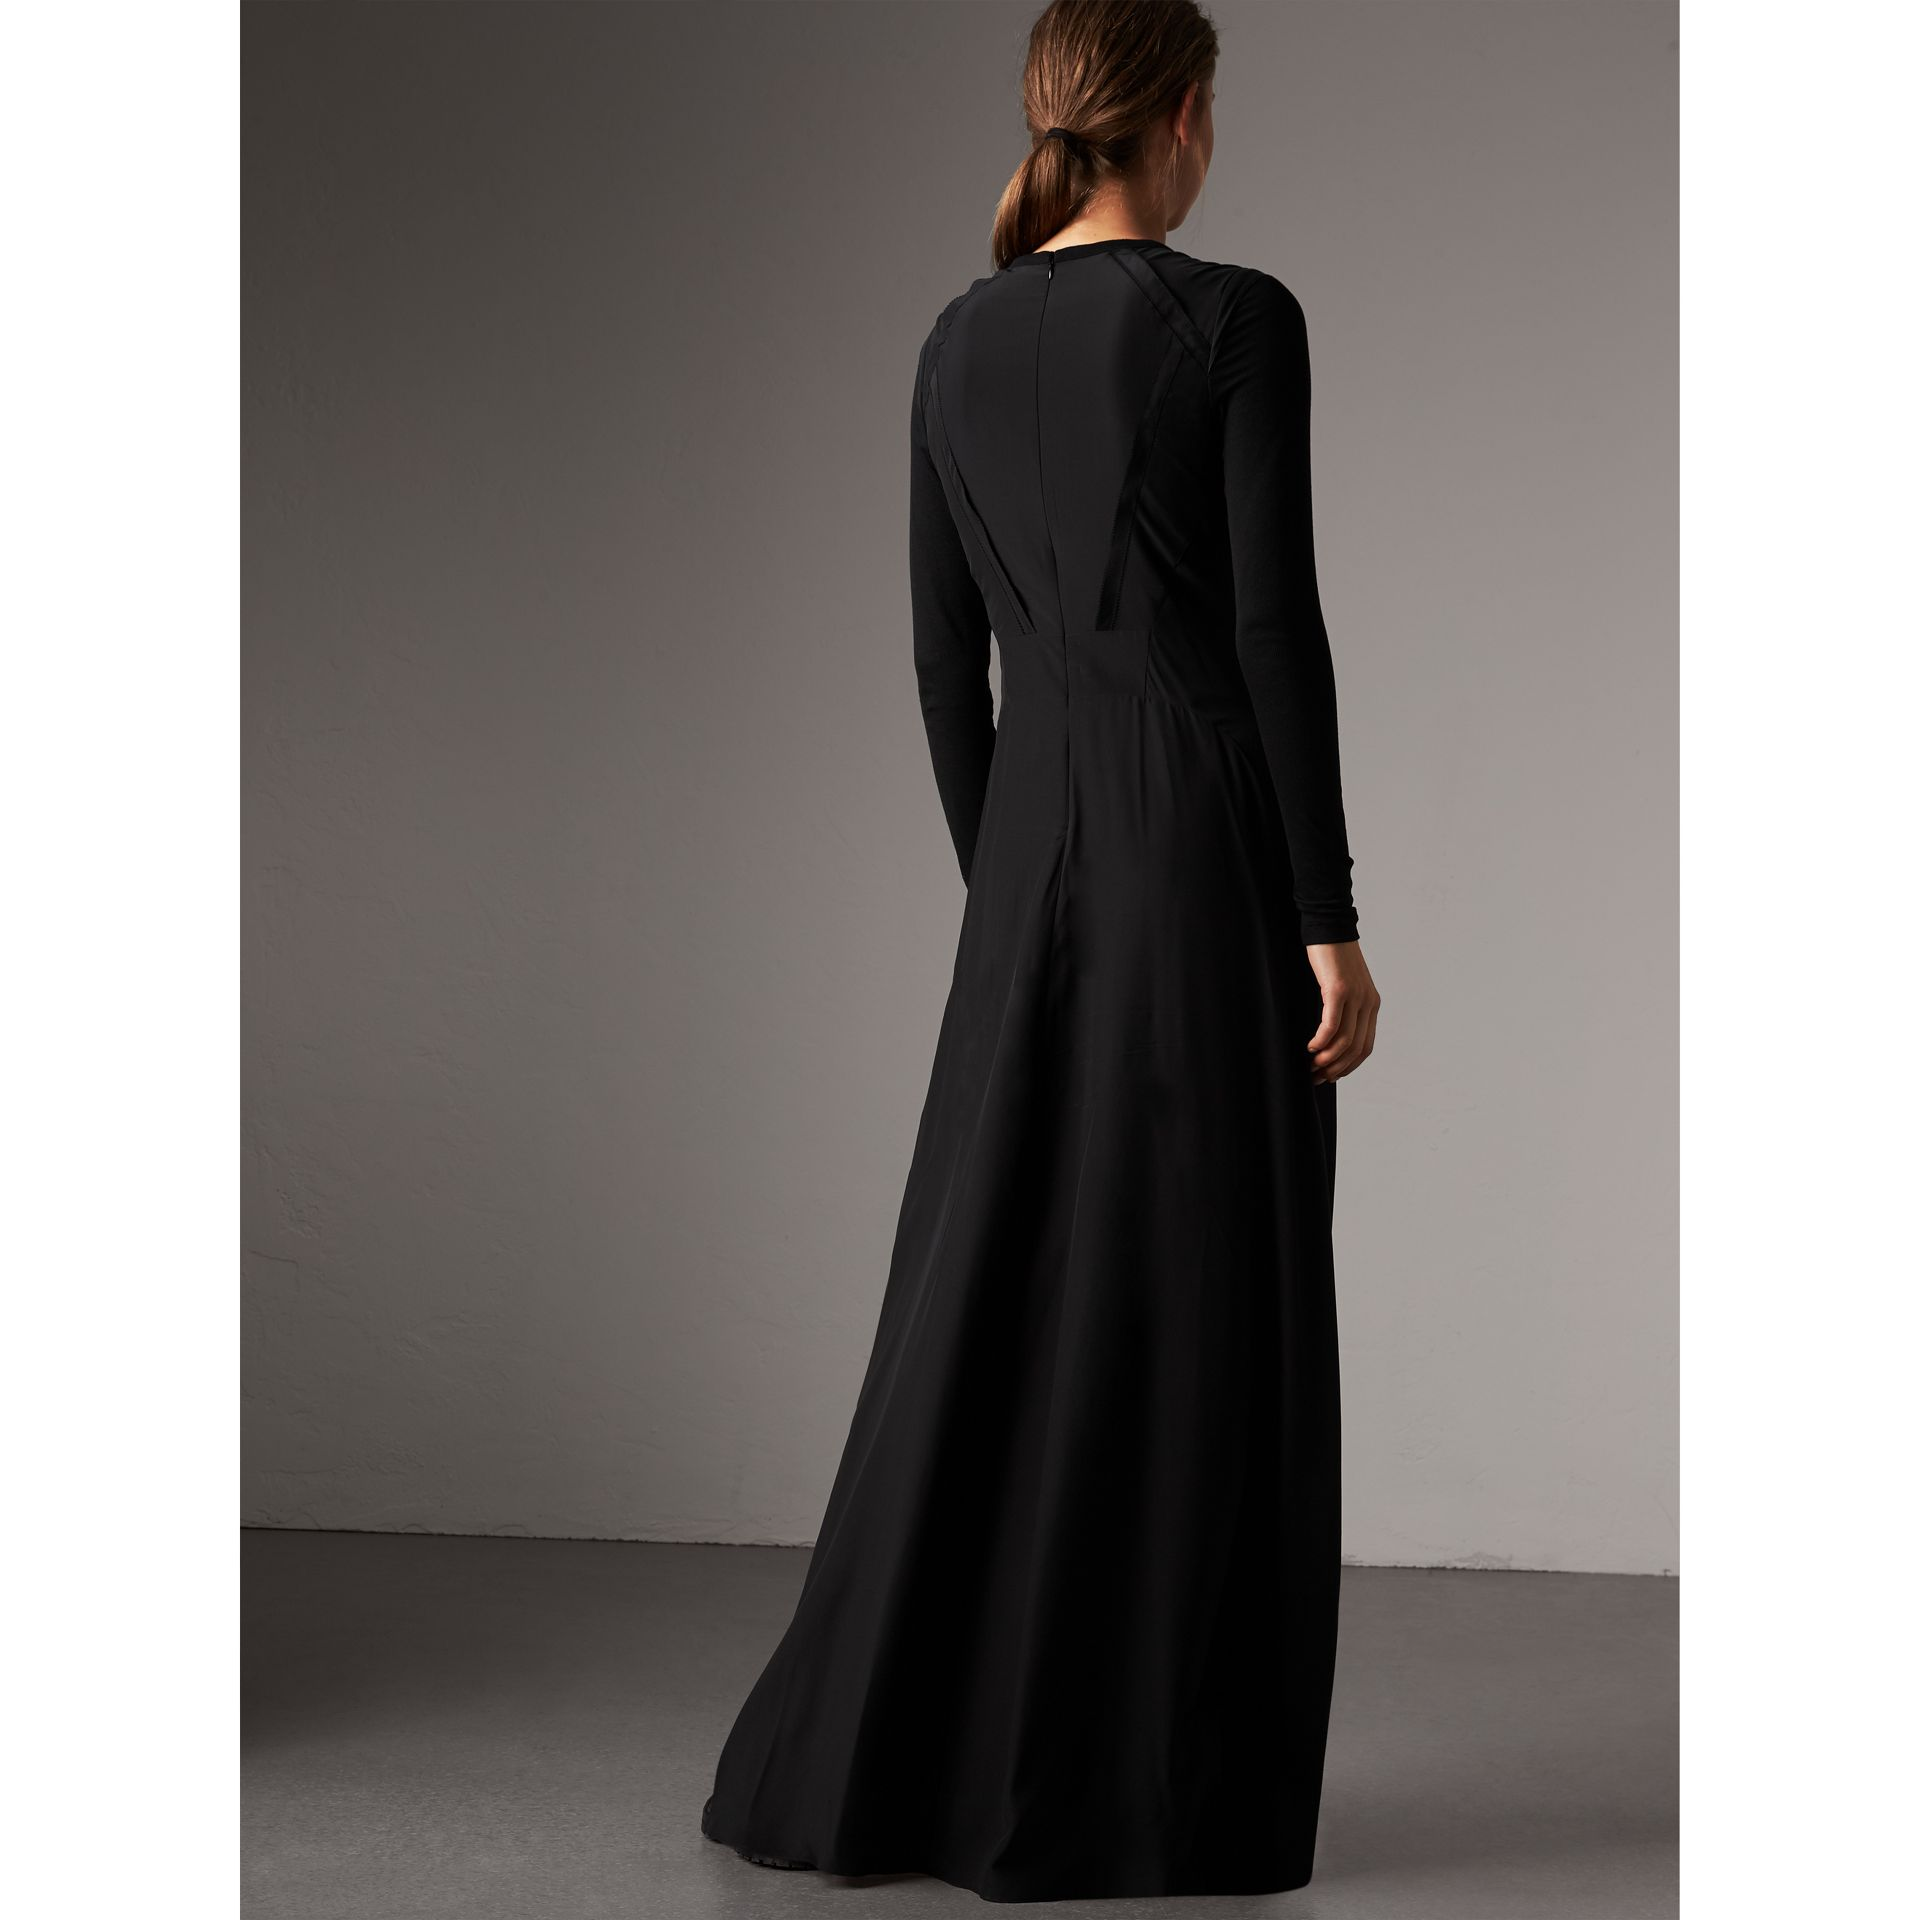 Silk Floor-length Gathered Dress in Black - Women | Burberry Australia - gallery image 3